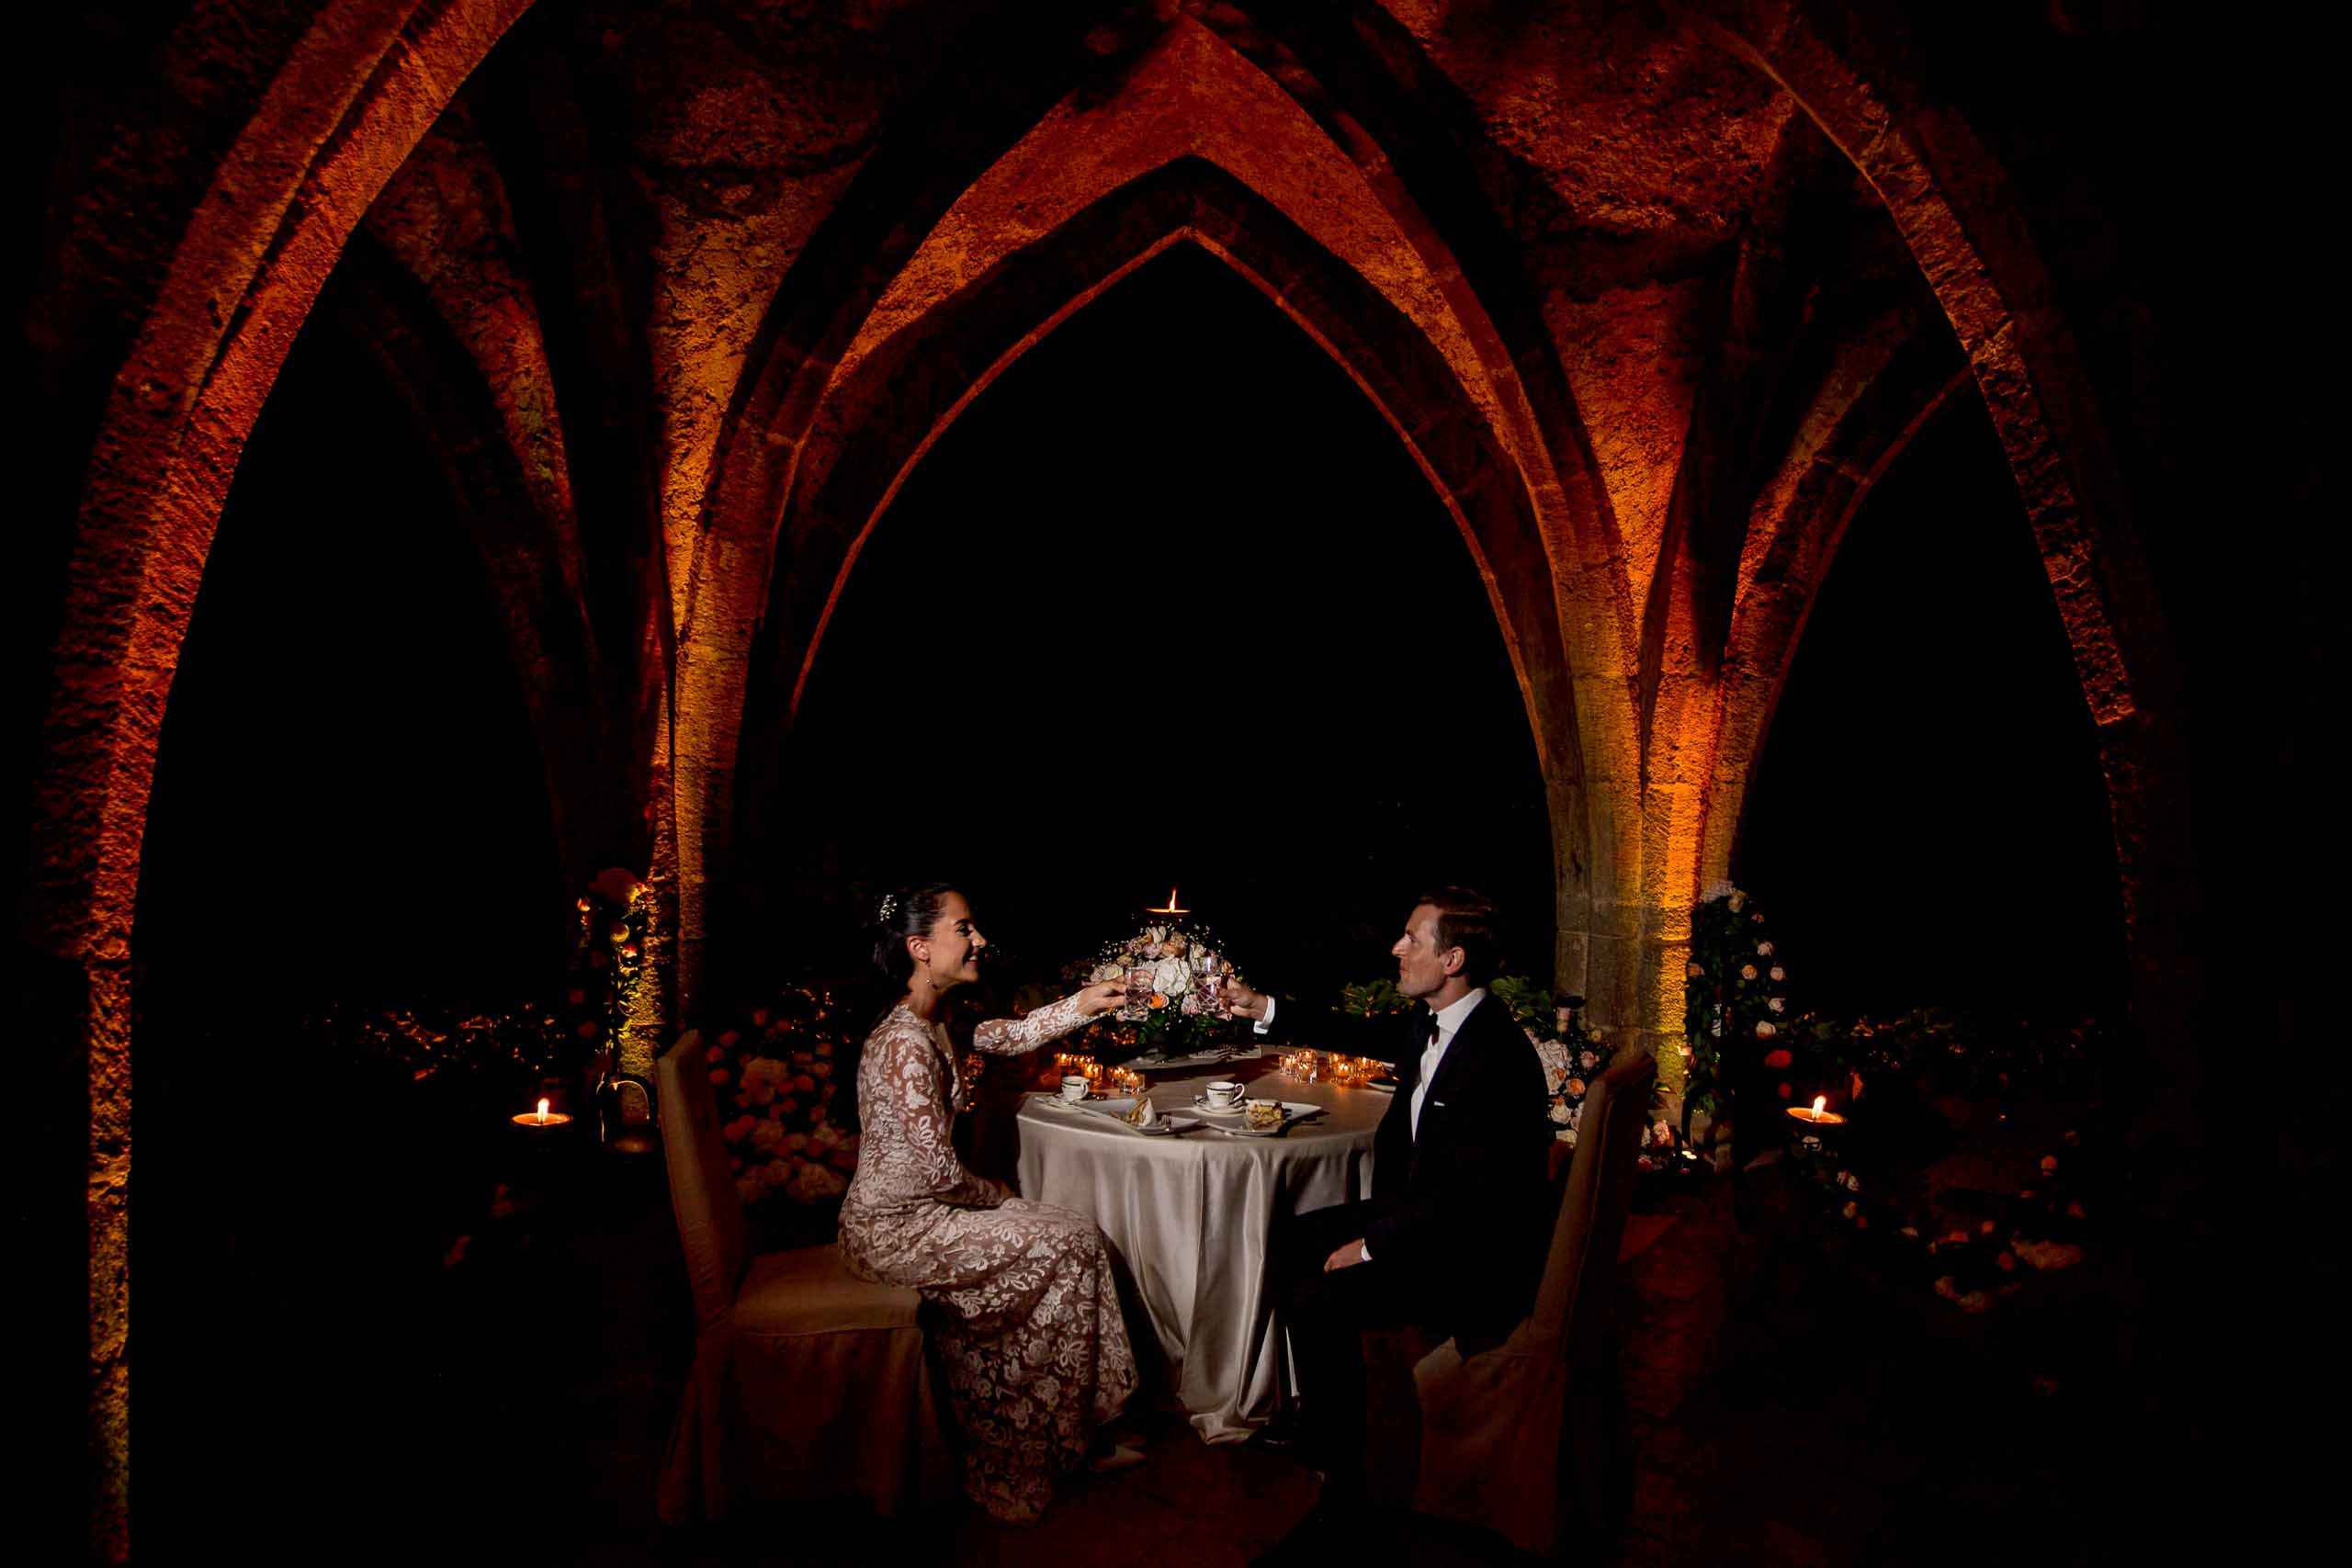 Beautiful bride and groom reception photo at Villa Cimbrone in the crypt for their Ravello elopement along the Amalfi coast in Italy.